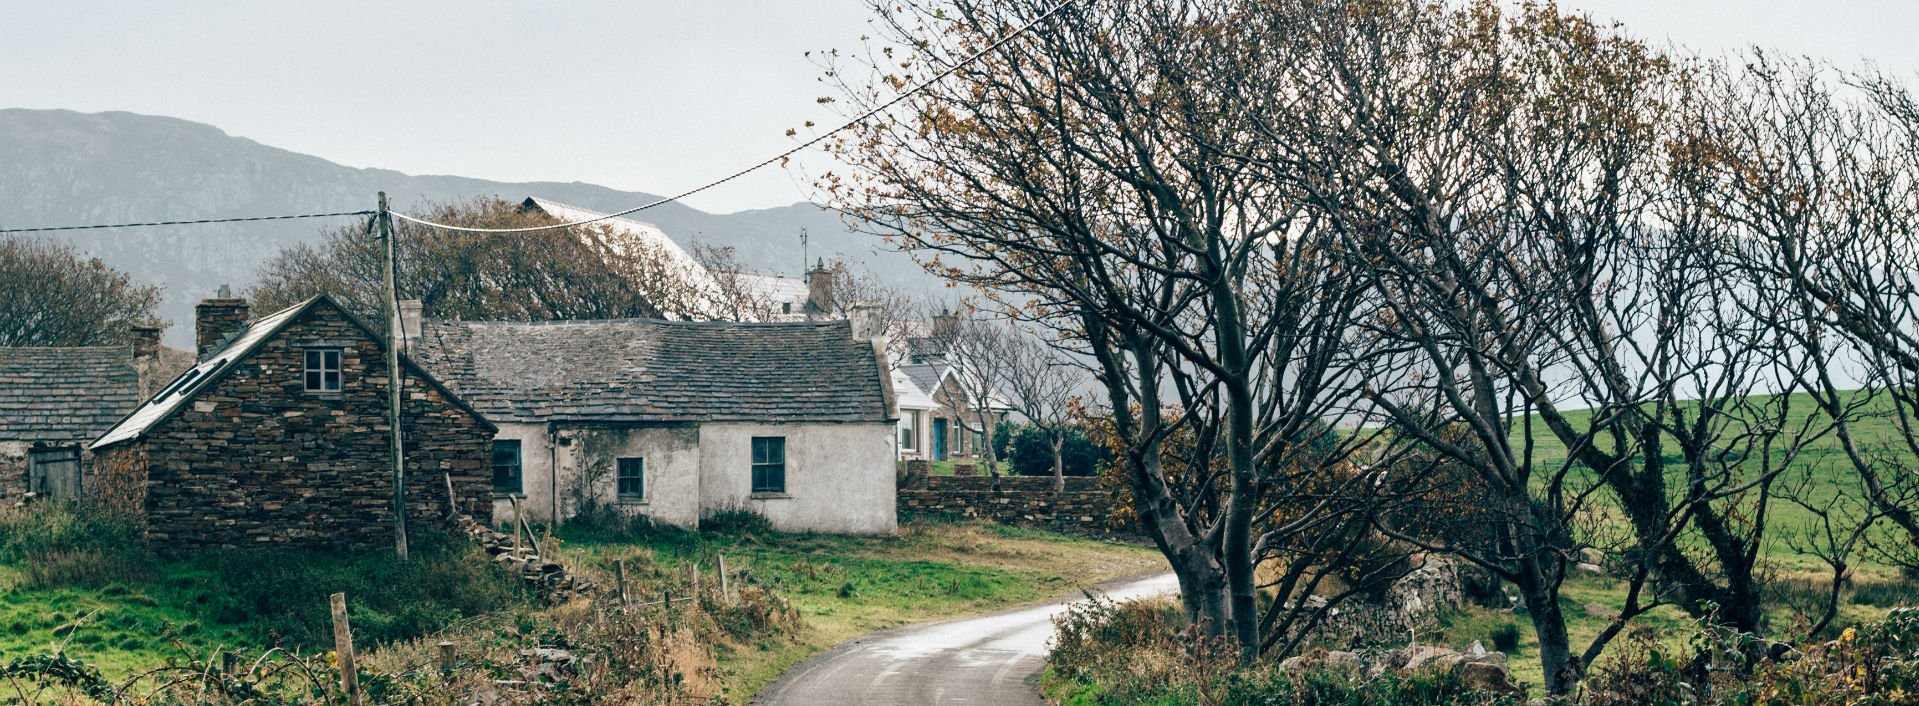 Cottage house at the side of a country road: loan words from Irish